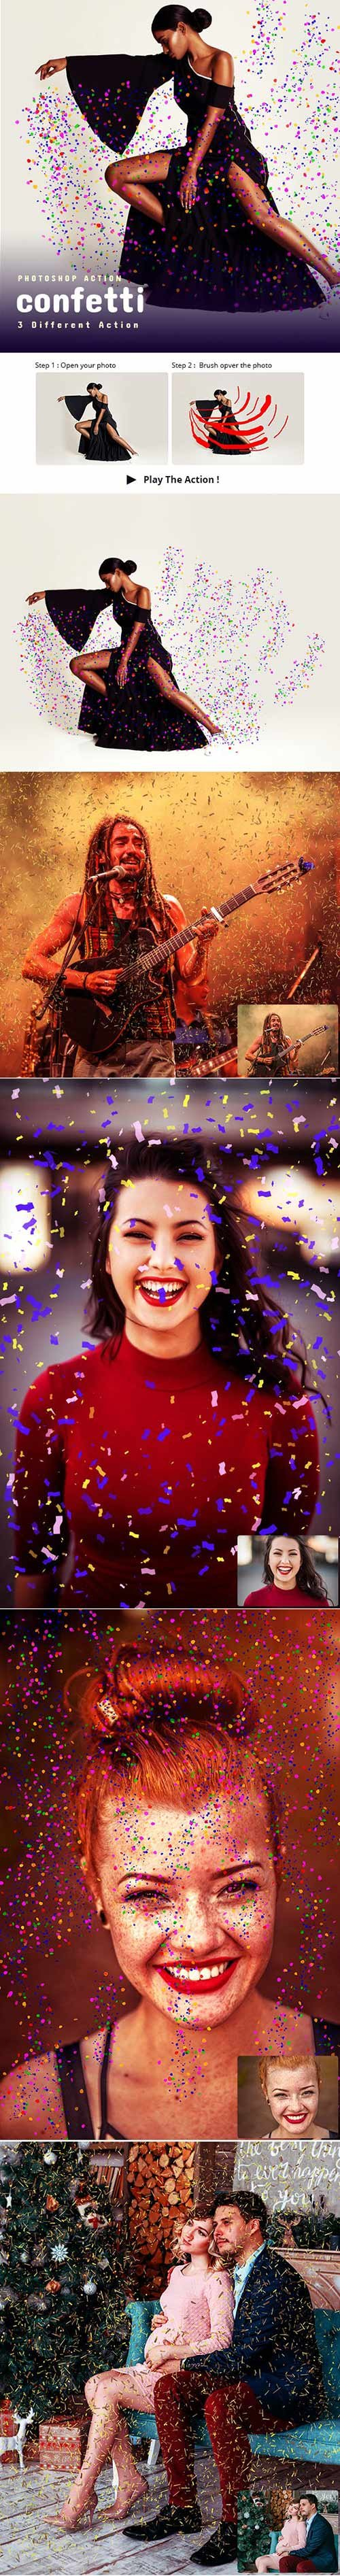 GraphicRiver - 3 Confetti Photoshop Action 22825024